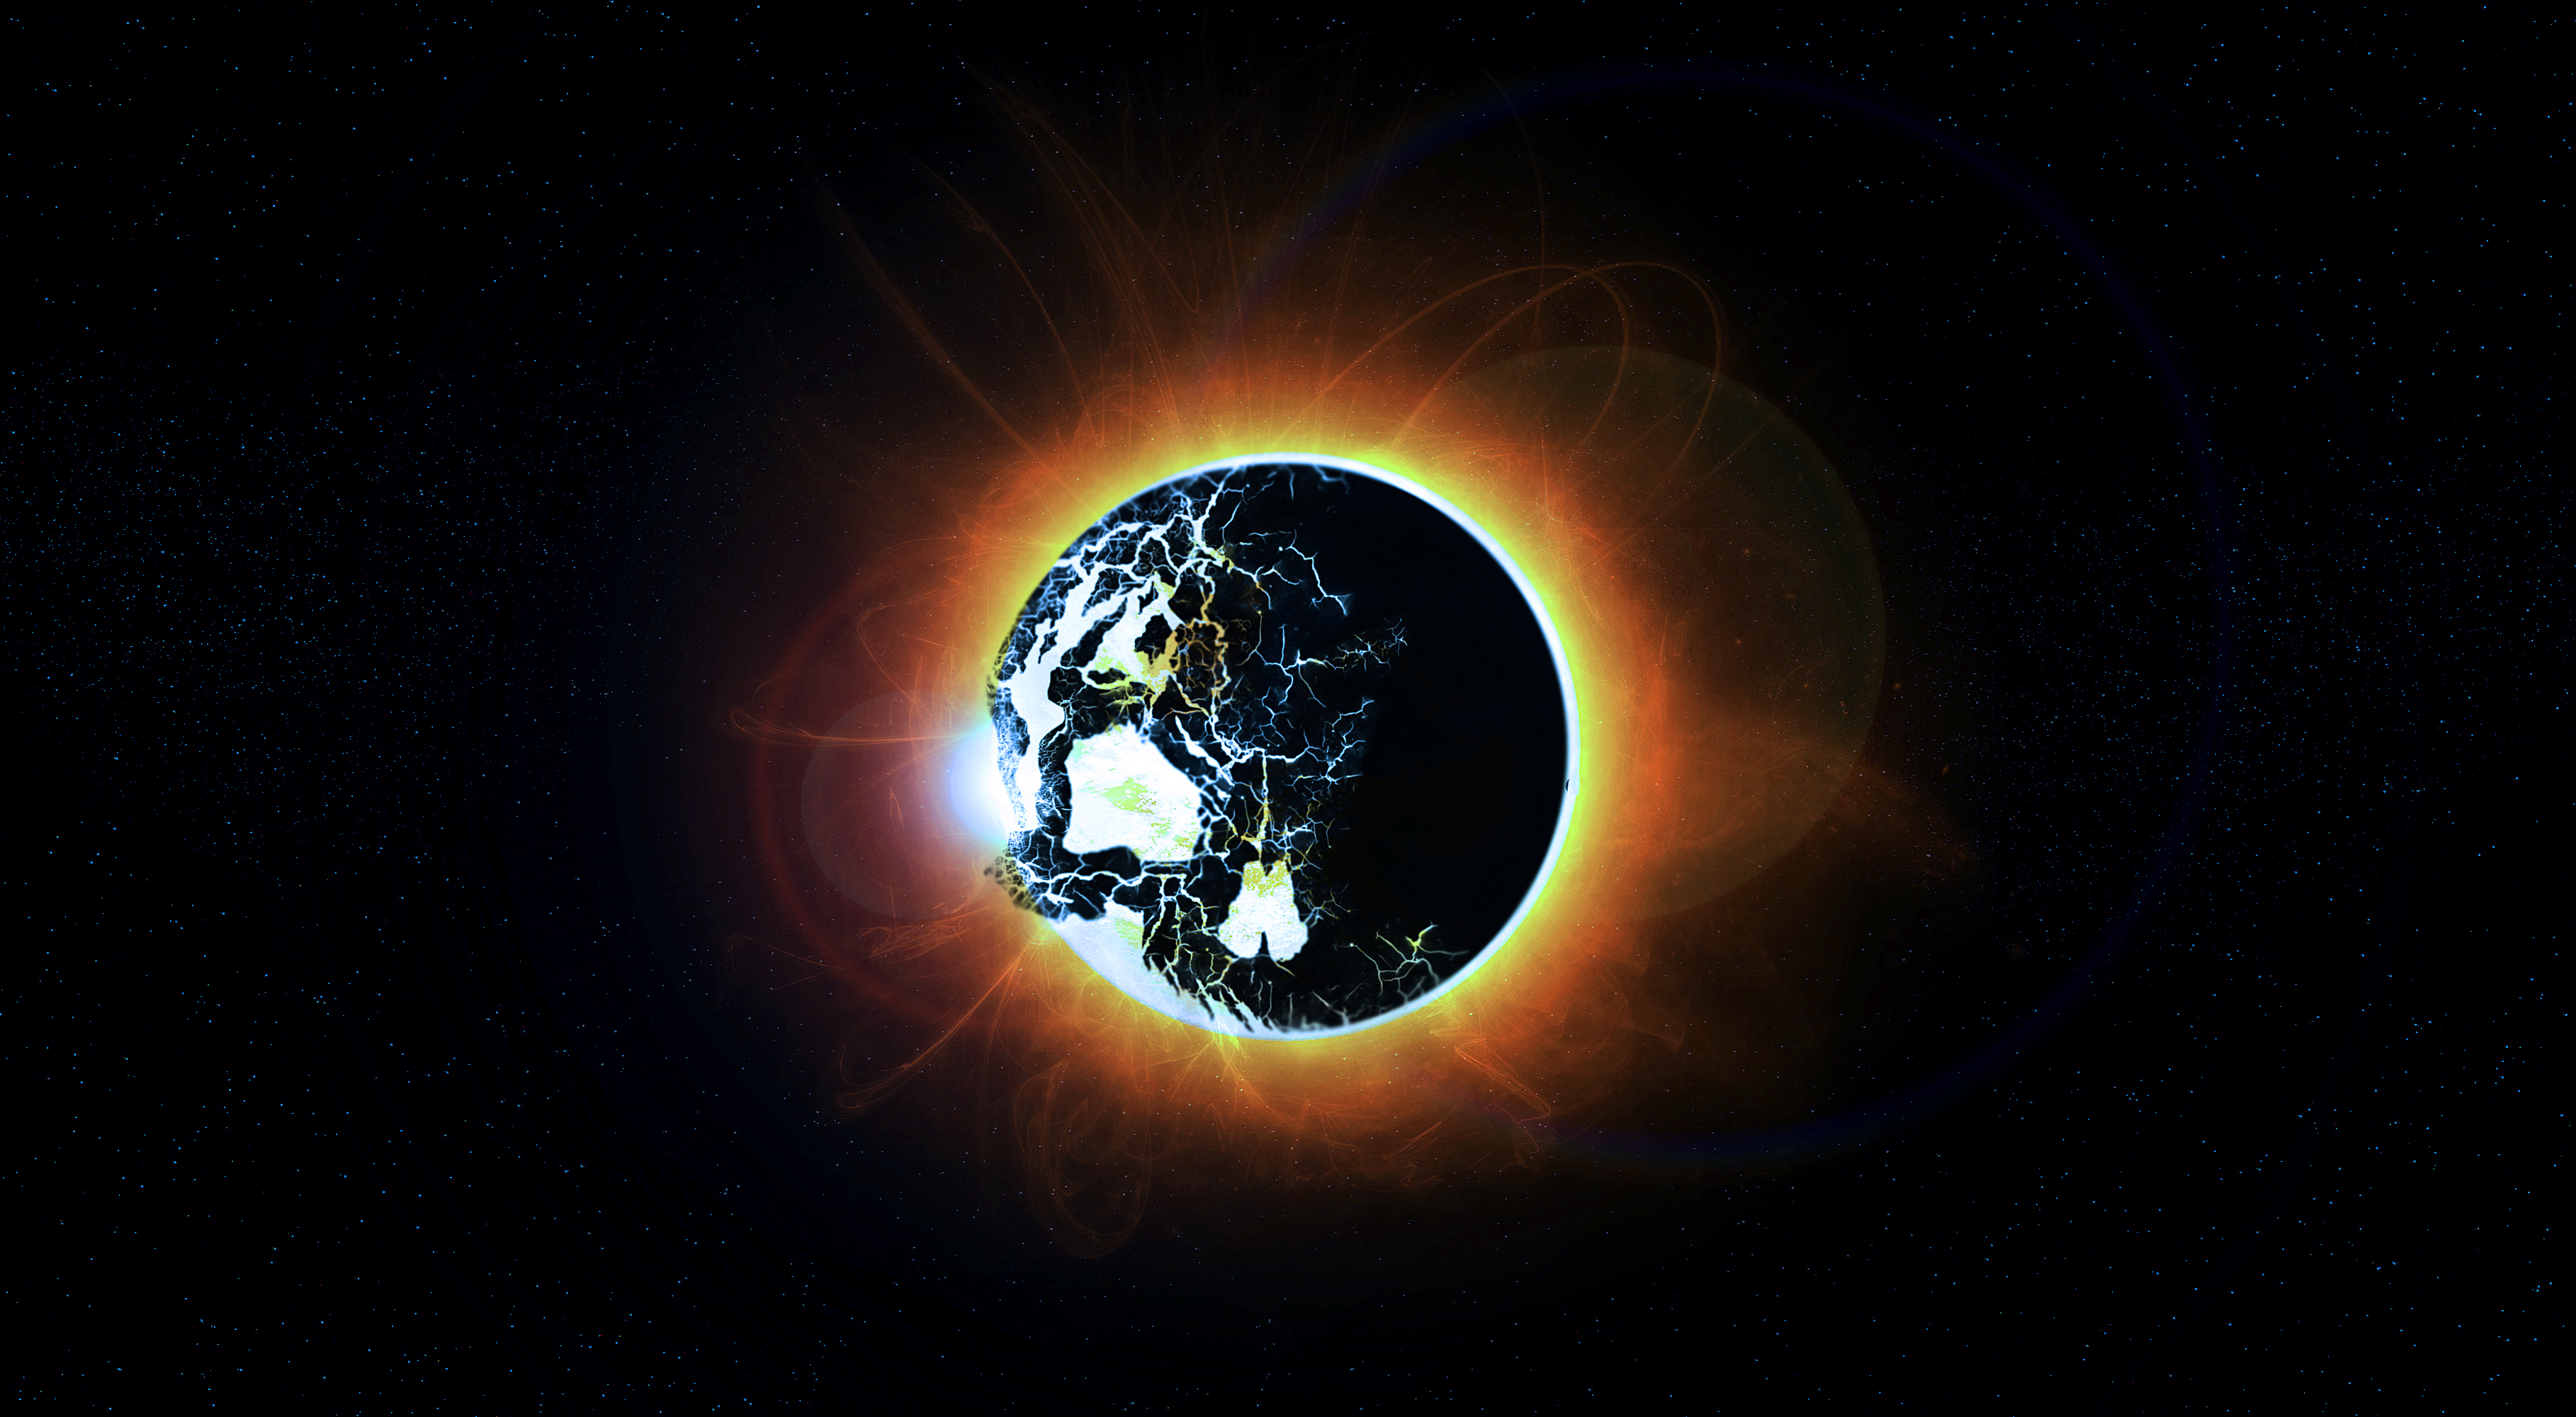 Wallpaper space sun stars eclipse skull wallpapers space 1680x1050